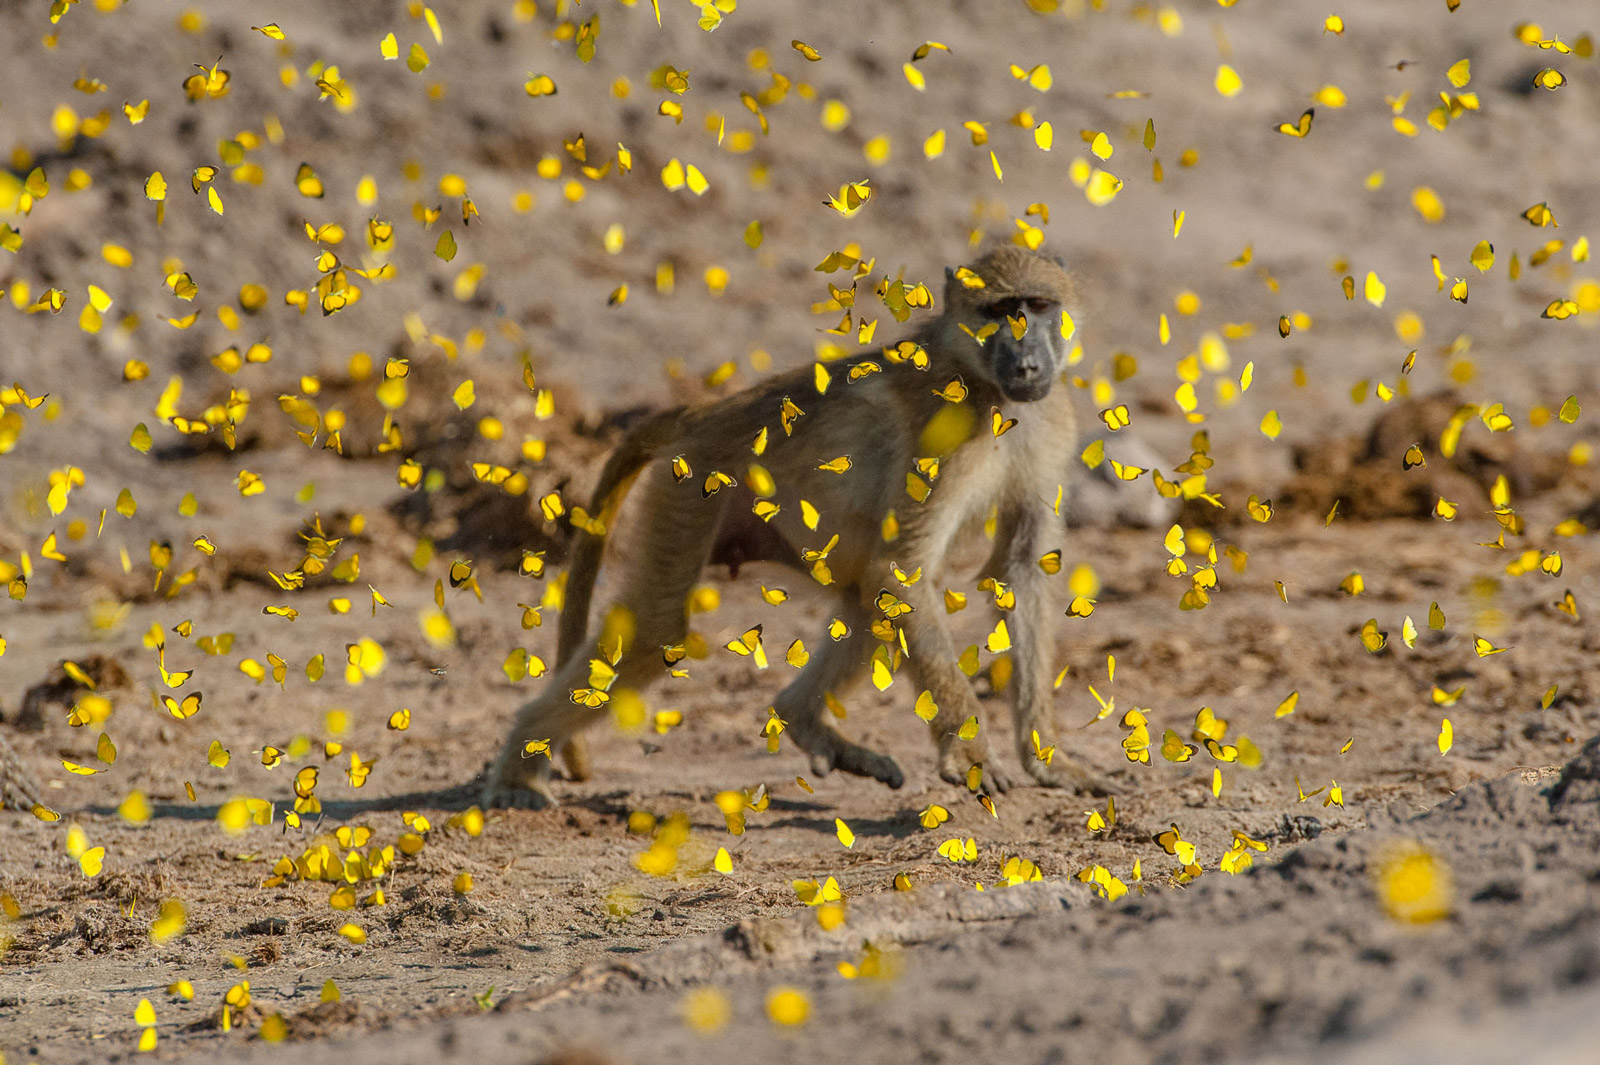 Baboon having a fun afternoon amongst the butterflies in Chobe, Botswana ©Corlette Wessels